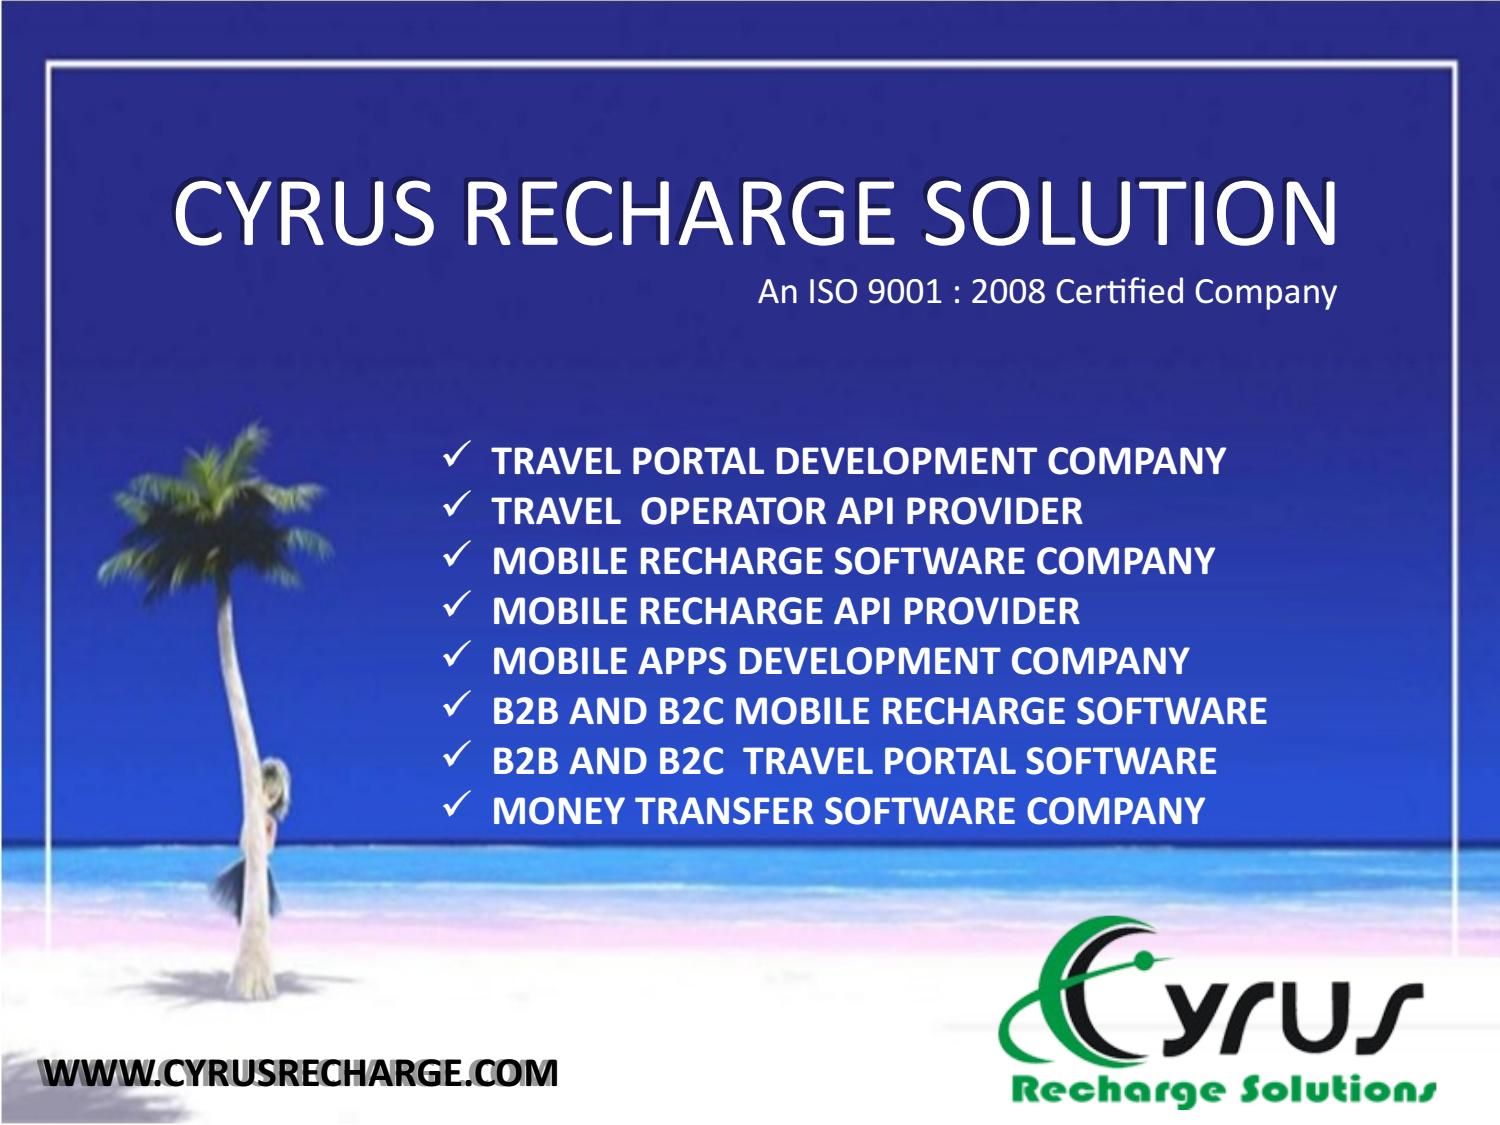 Cyrus recharge solution largest software company in india by Cyrus